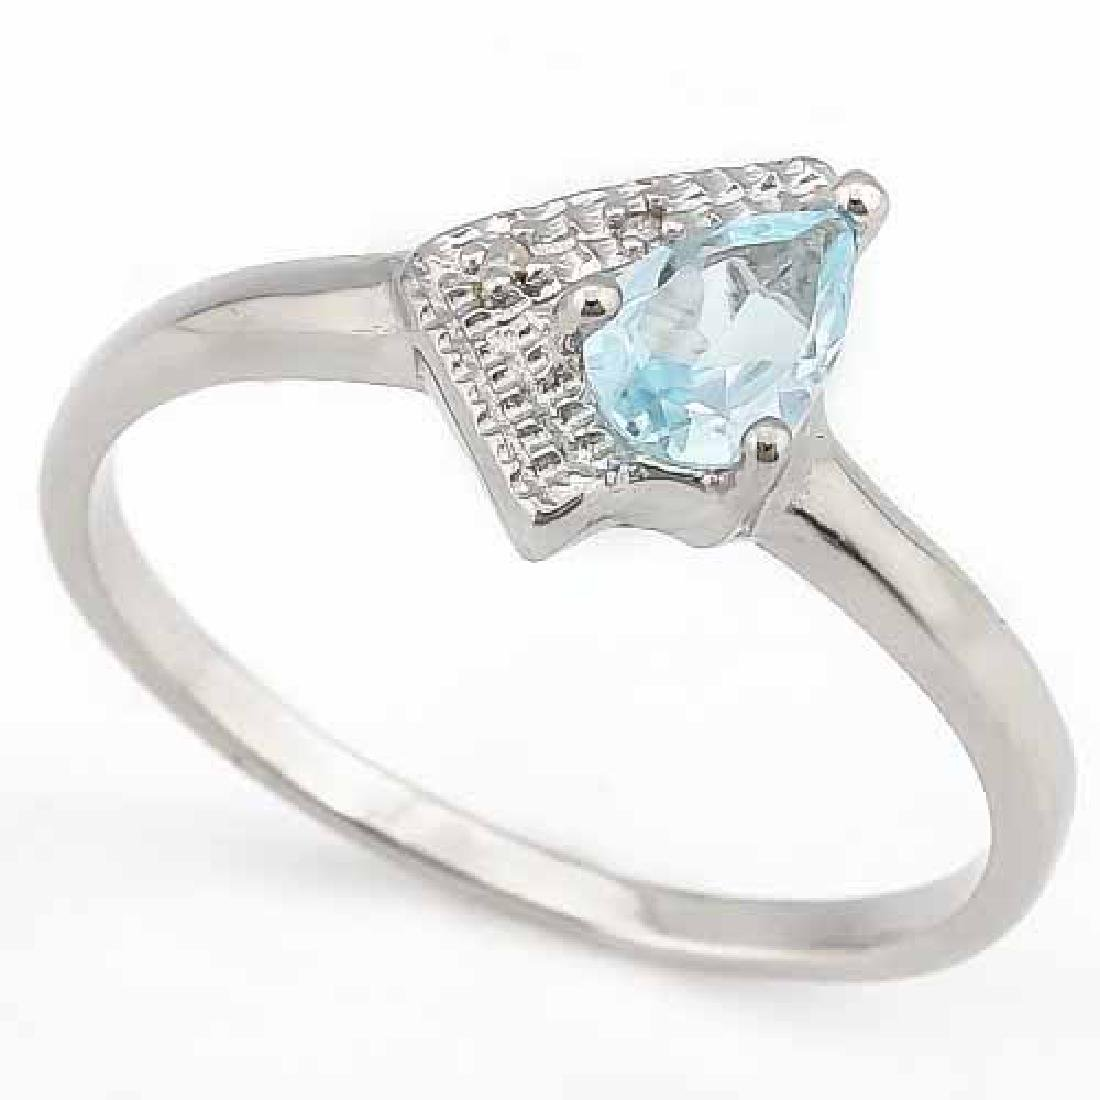 1/3 CARAT AQUAMARINE & DIAMOND 925 STERLING SILVER RING